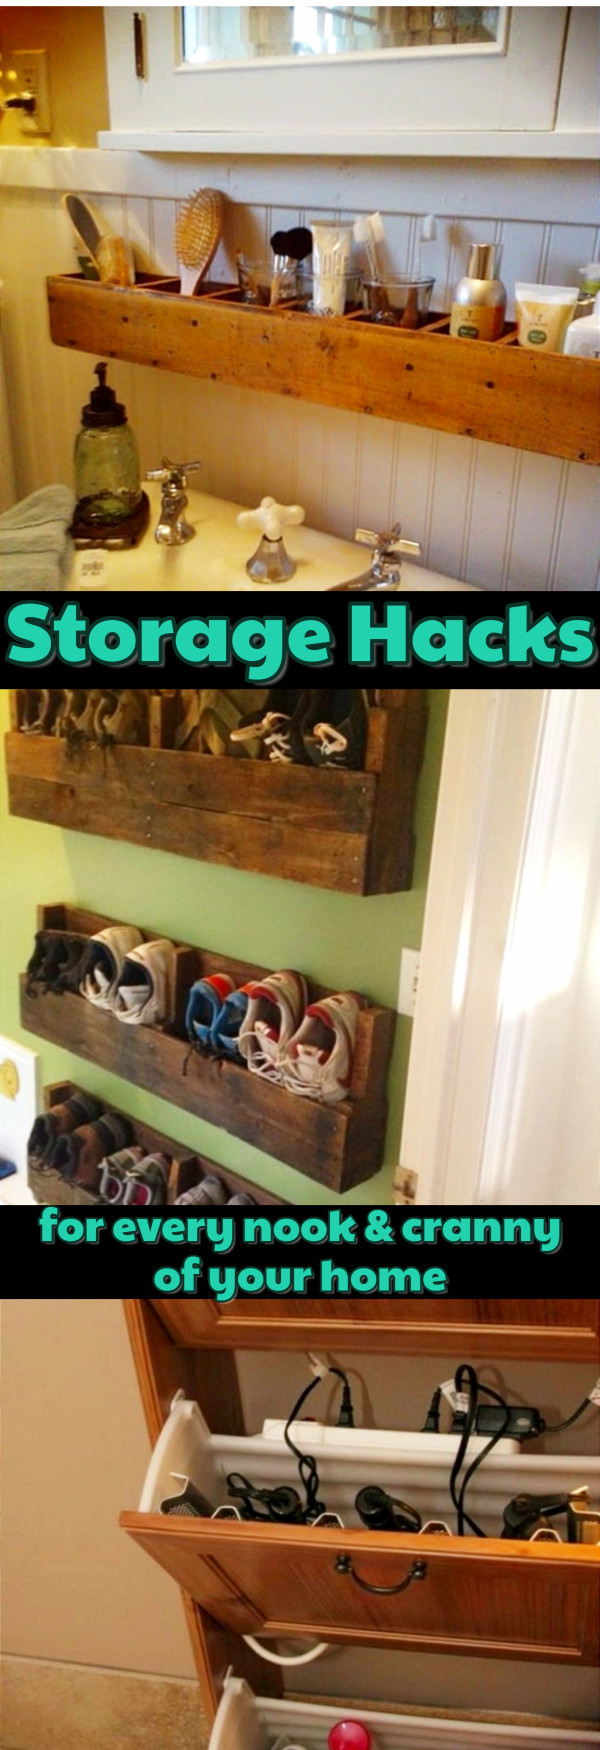 Creative storage ideas for small spaces (apartments, condos, RVs, and small homes)